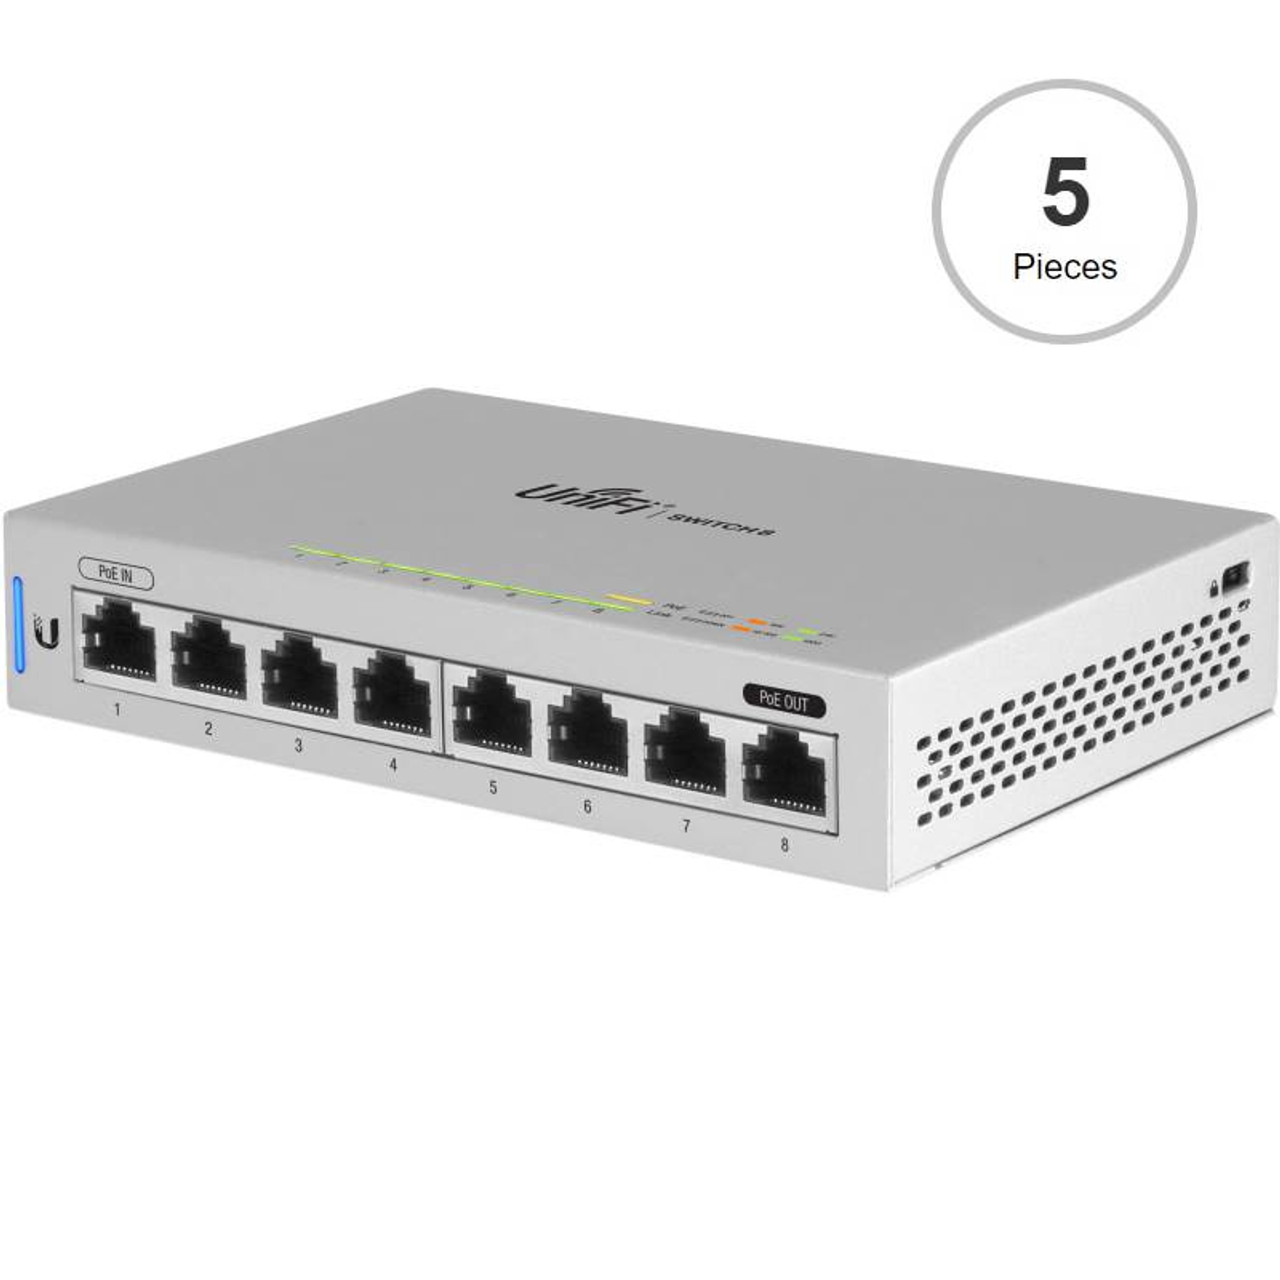 Image for Ubiquiti Networks US-8-5 UniFi Switch 8 Managed 8-Port Gigabit Switch - 5 Pack CX Computer Superstore